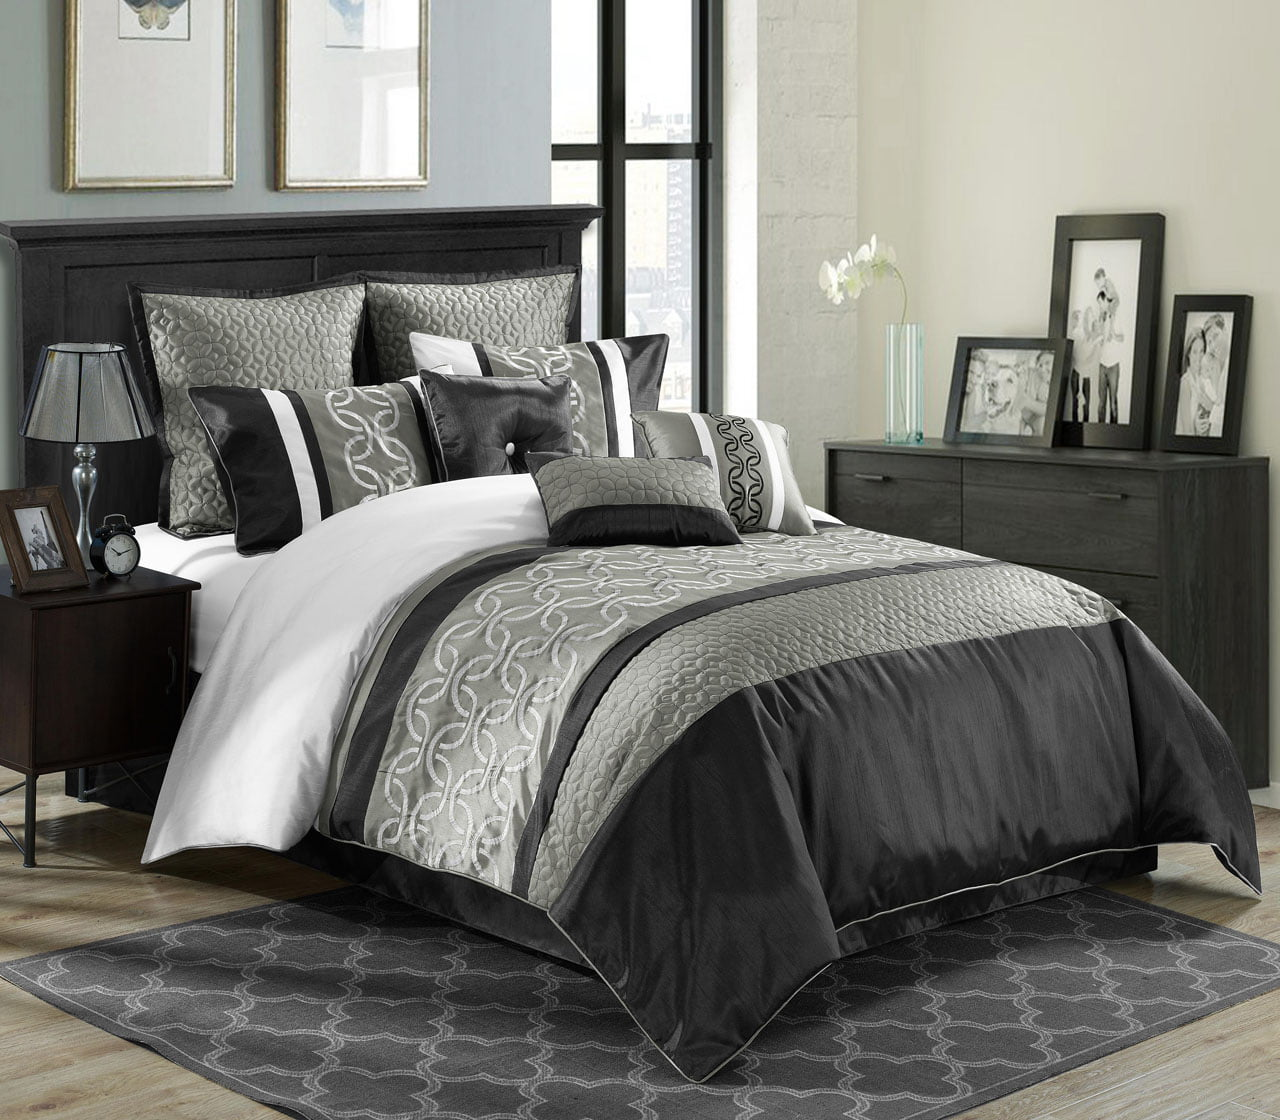 9 Piece Bordeaux Black/Gray/White Comforter Set